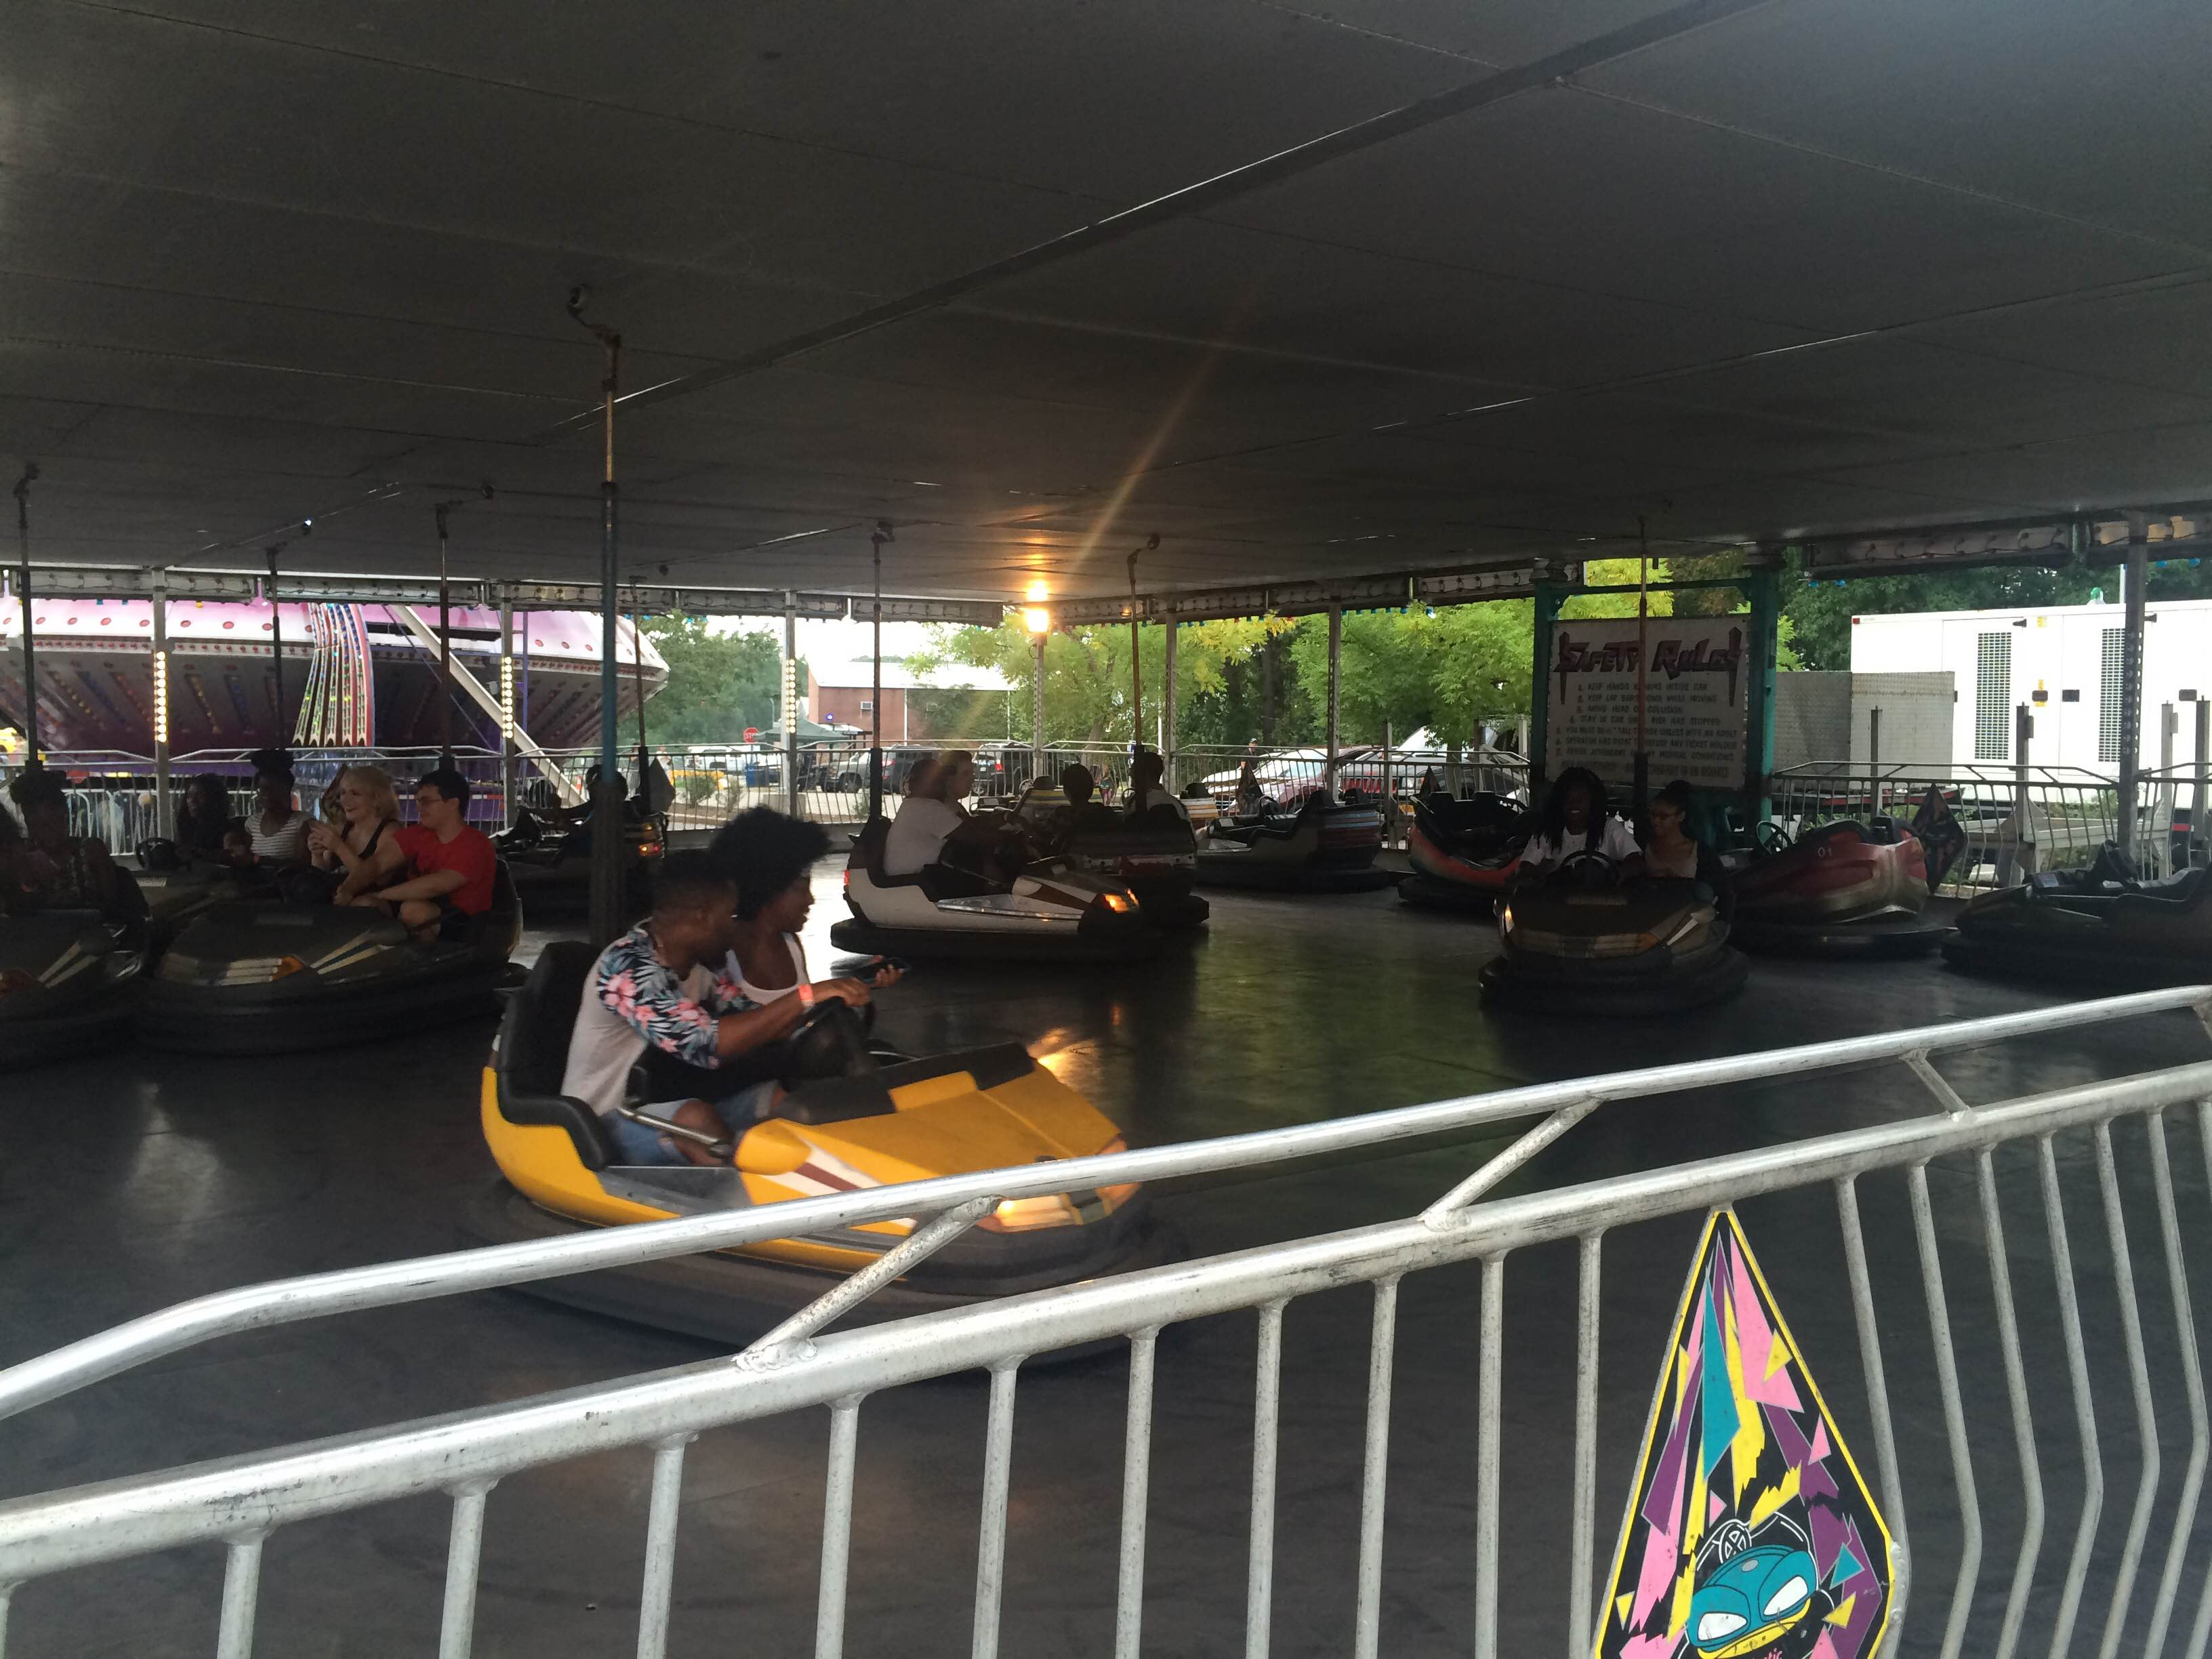 Students riding bumper cars at Wolfieland.